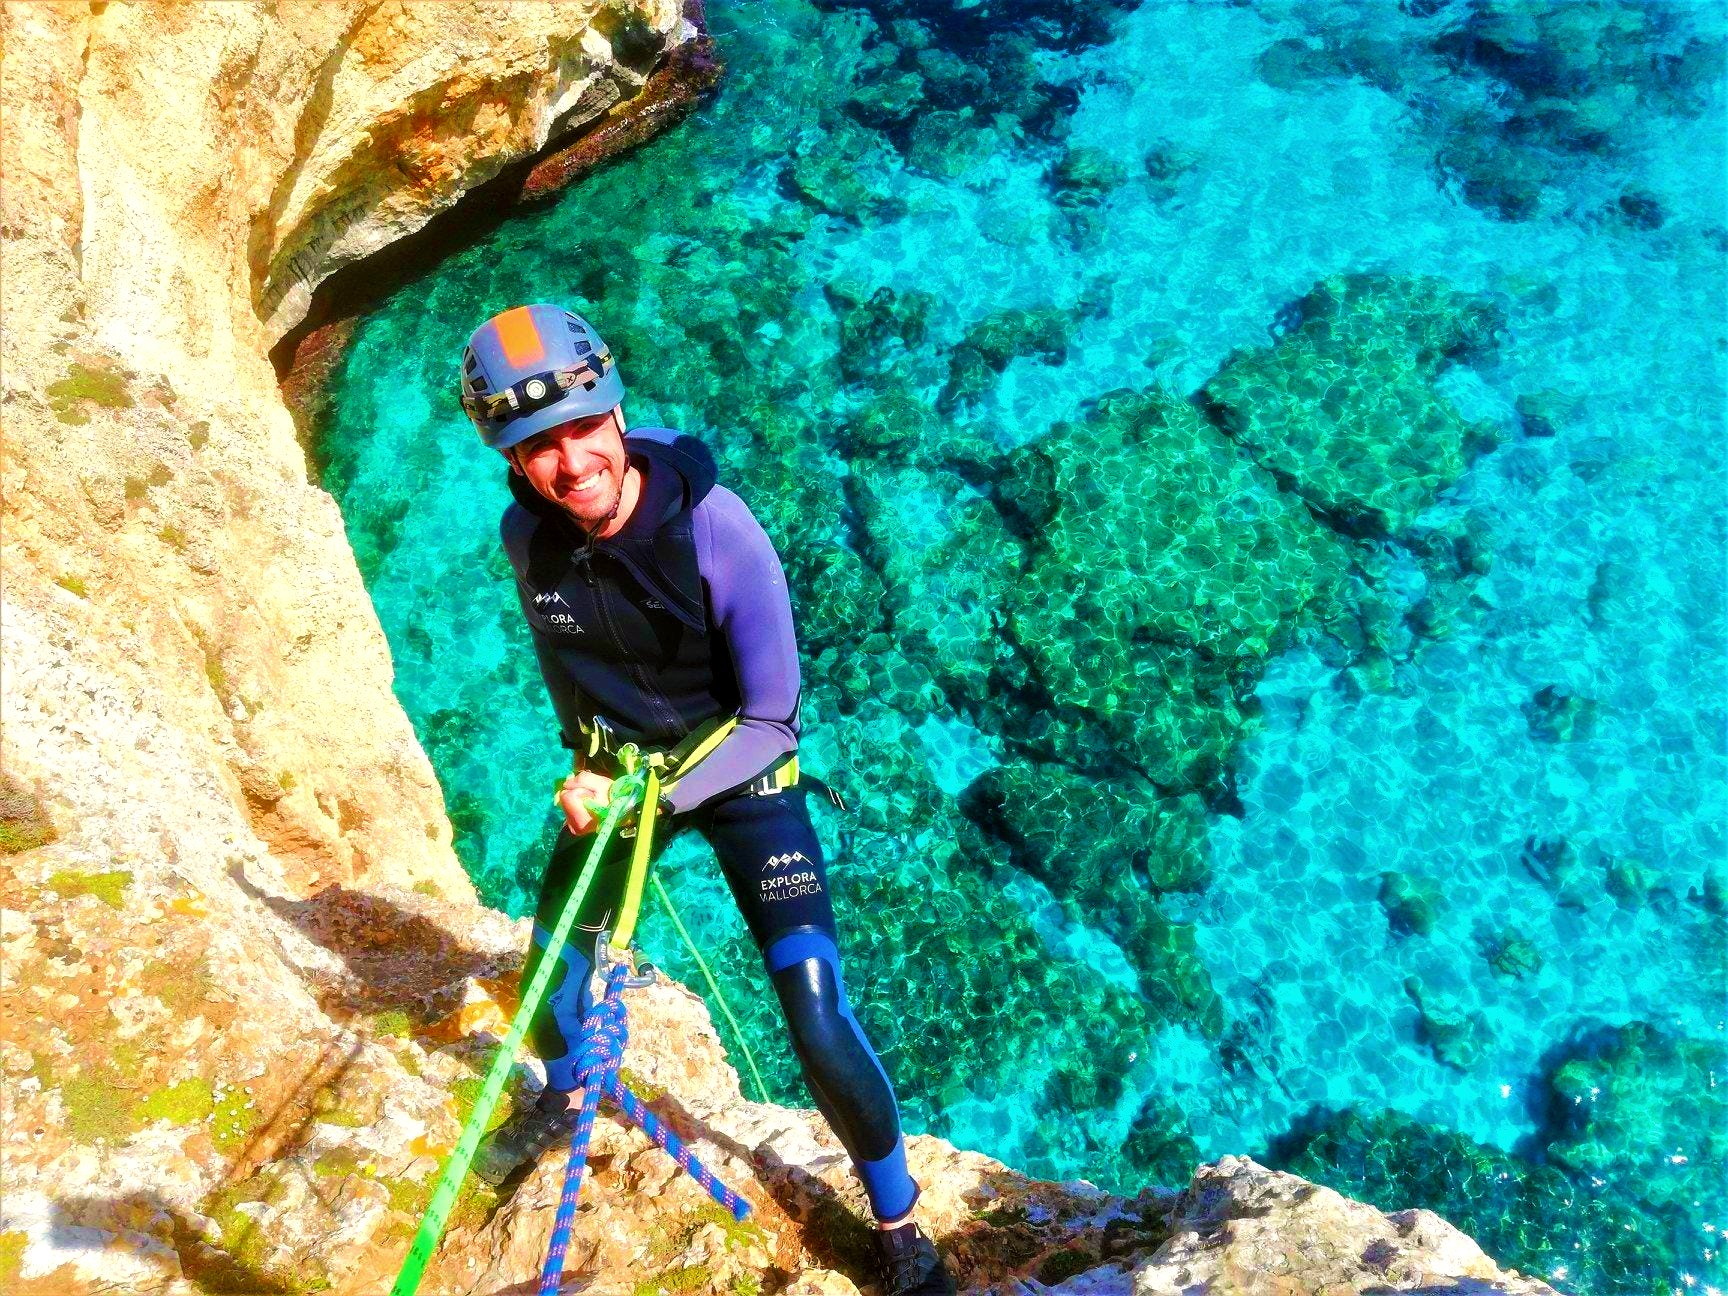 A guy is abseiling a cliff during Coasteering in Mallorca.